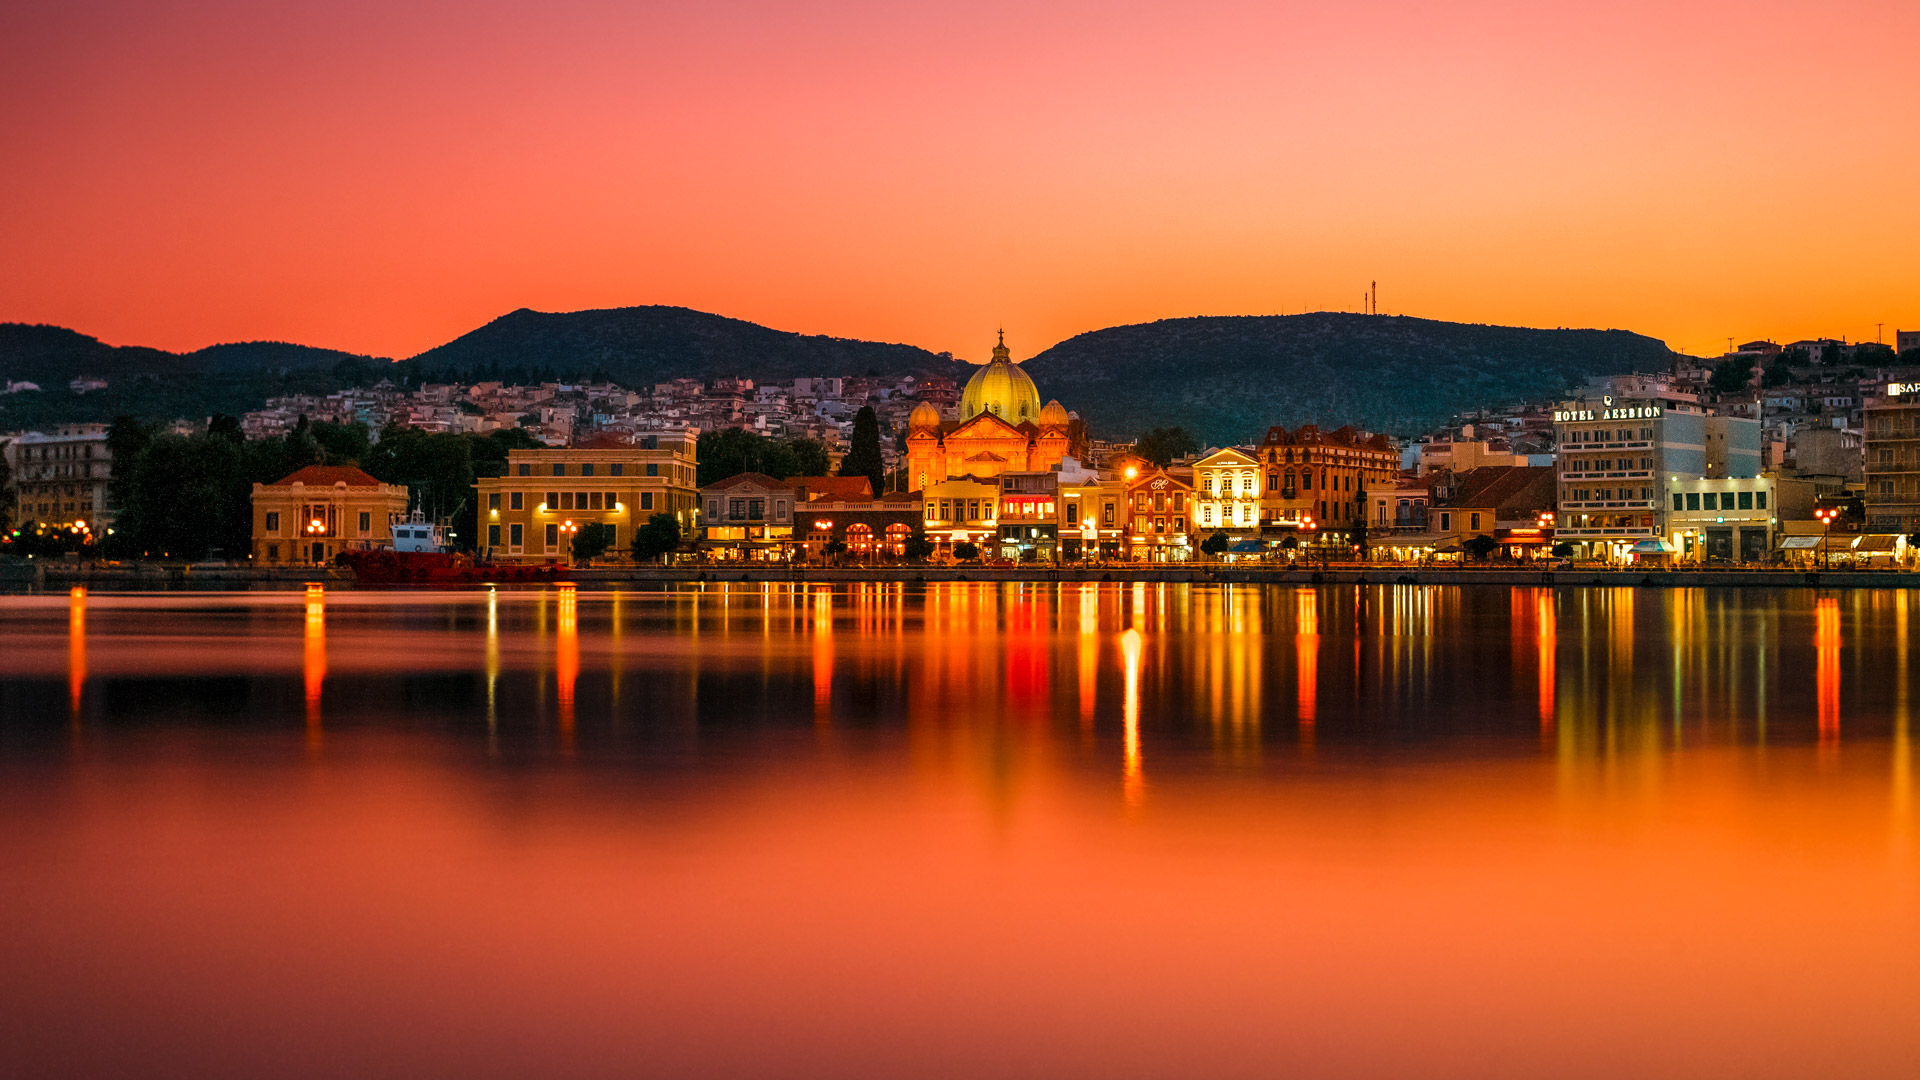 Panoramic view of Mytilene town in Lesvos island